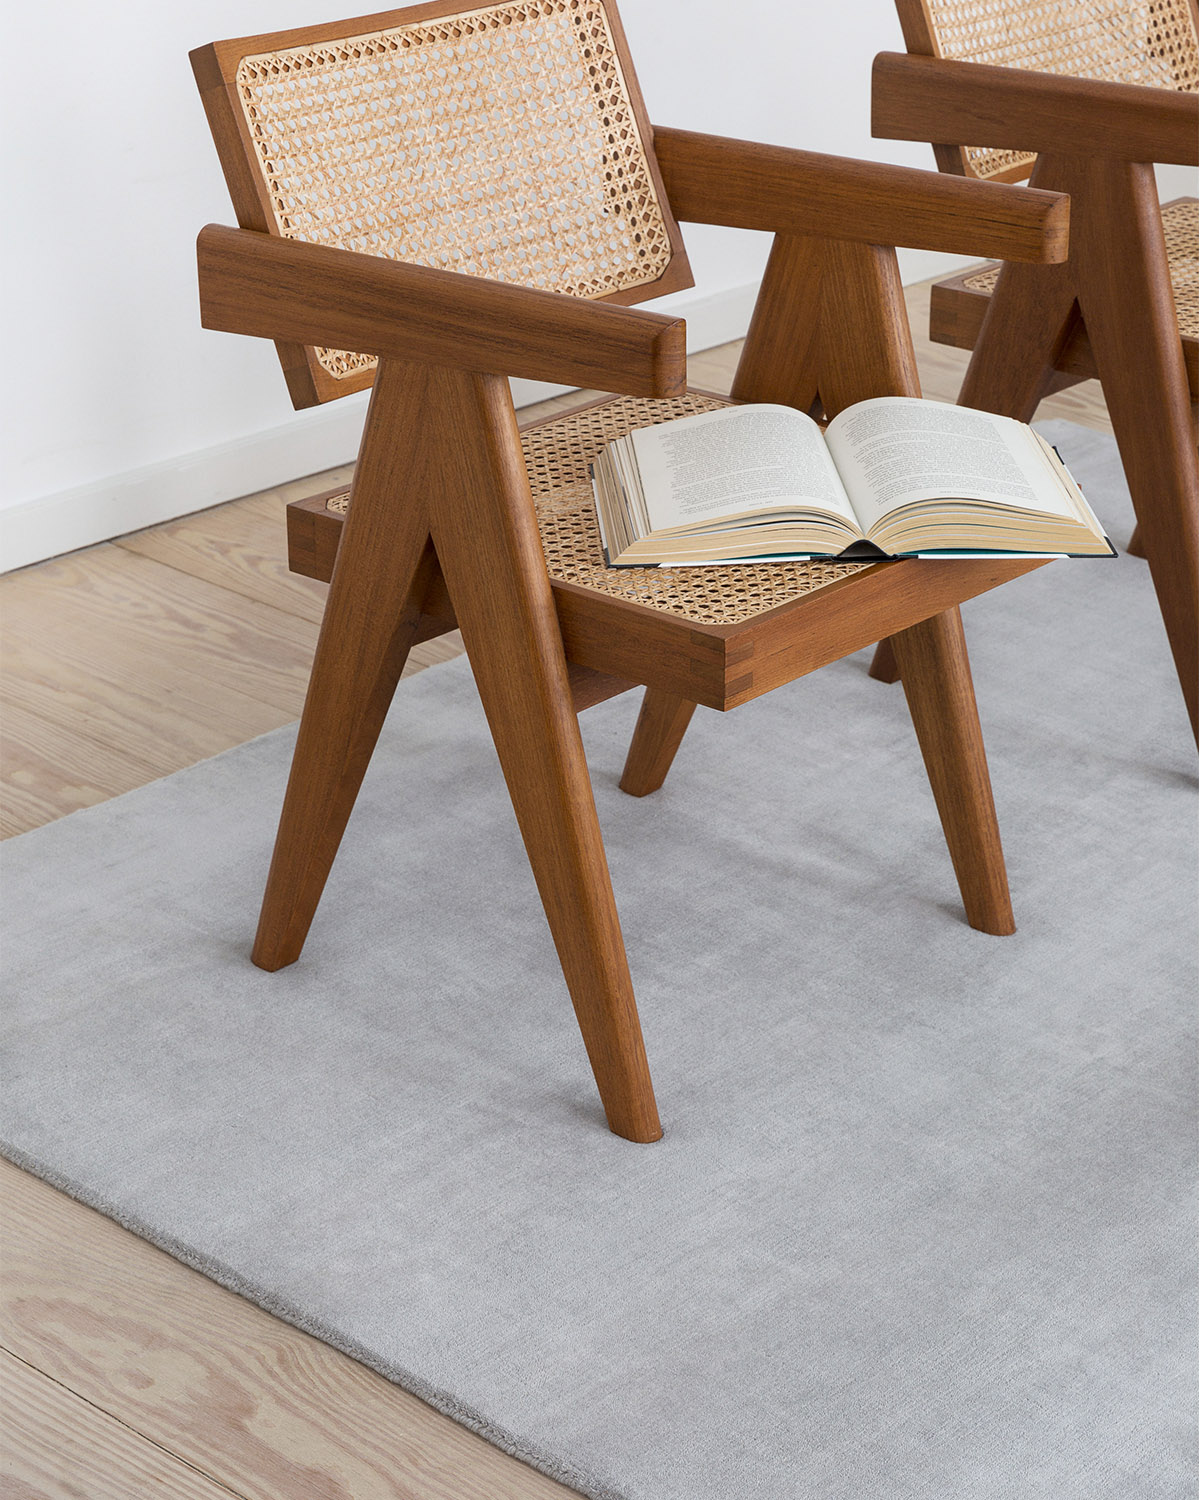 The rug Grand in Silver displayed in a living room together with wood and rattan armchairs.